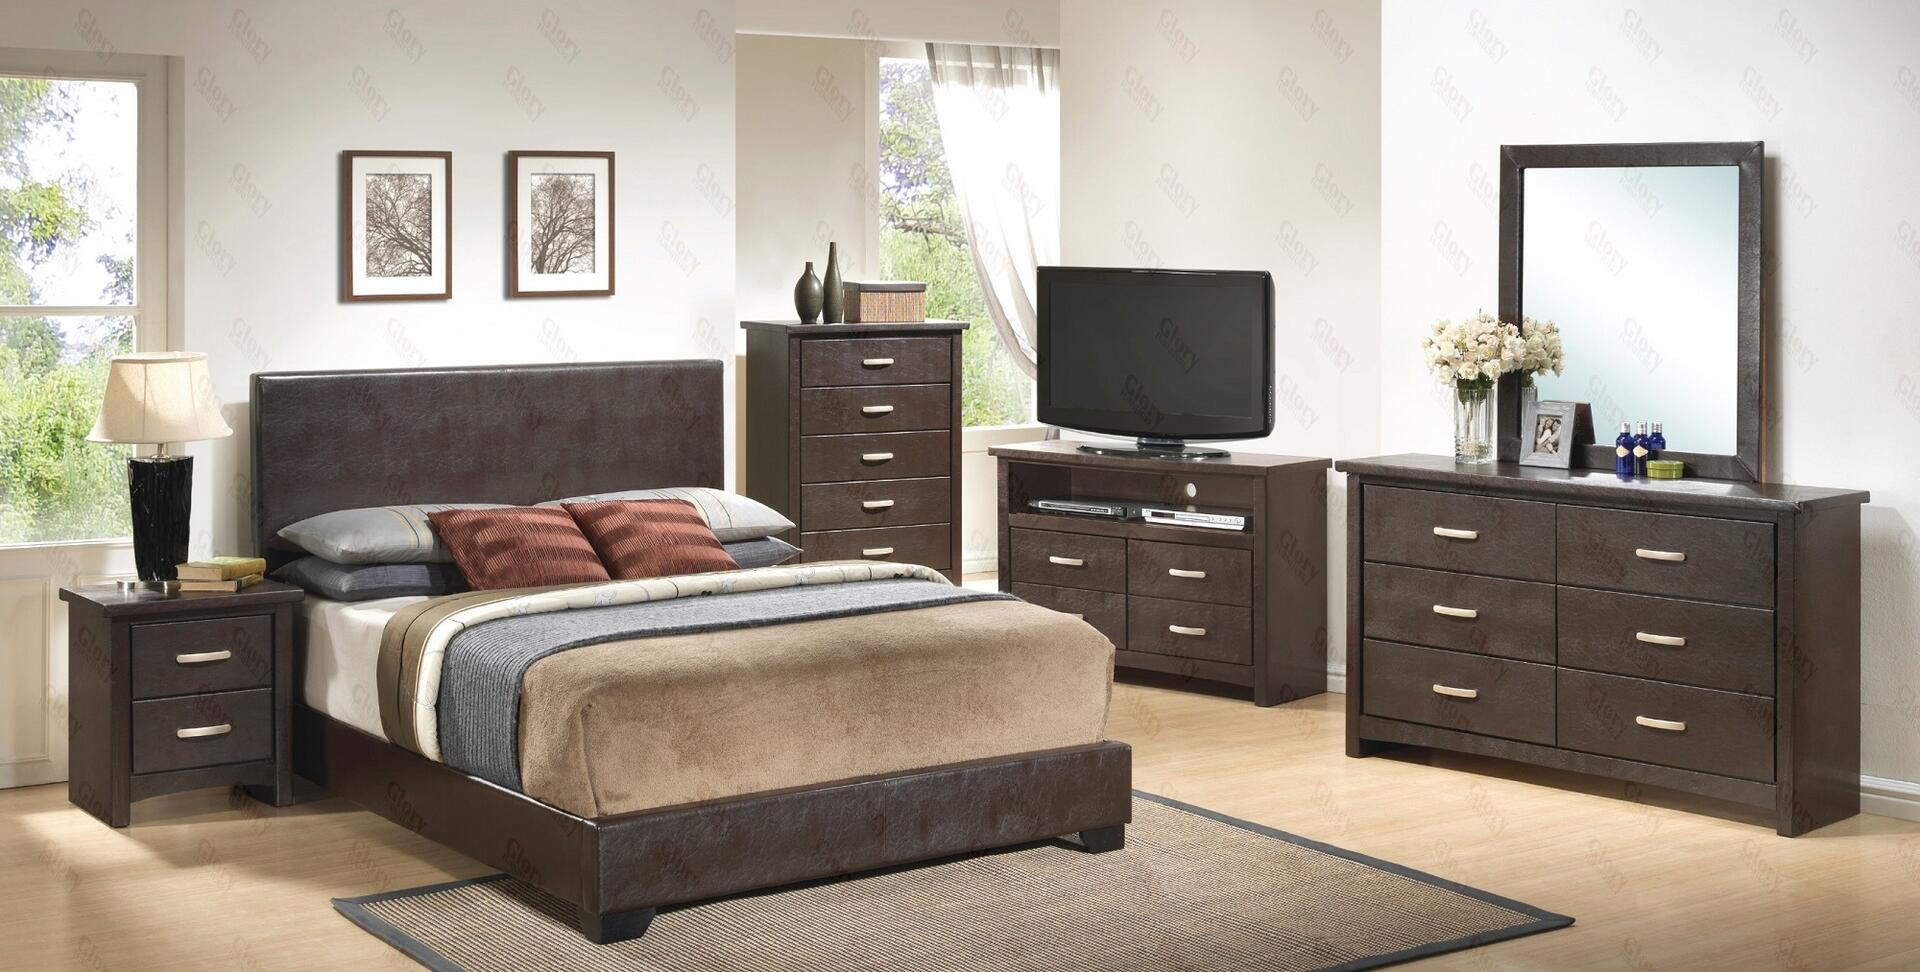 Glory furniture g1800kbupset king bedroom sets for G plan bedroom furniture